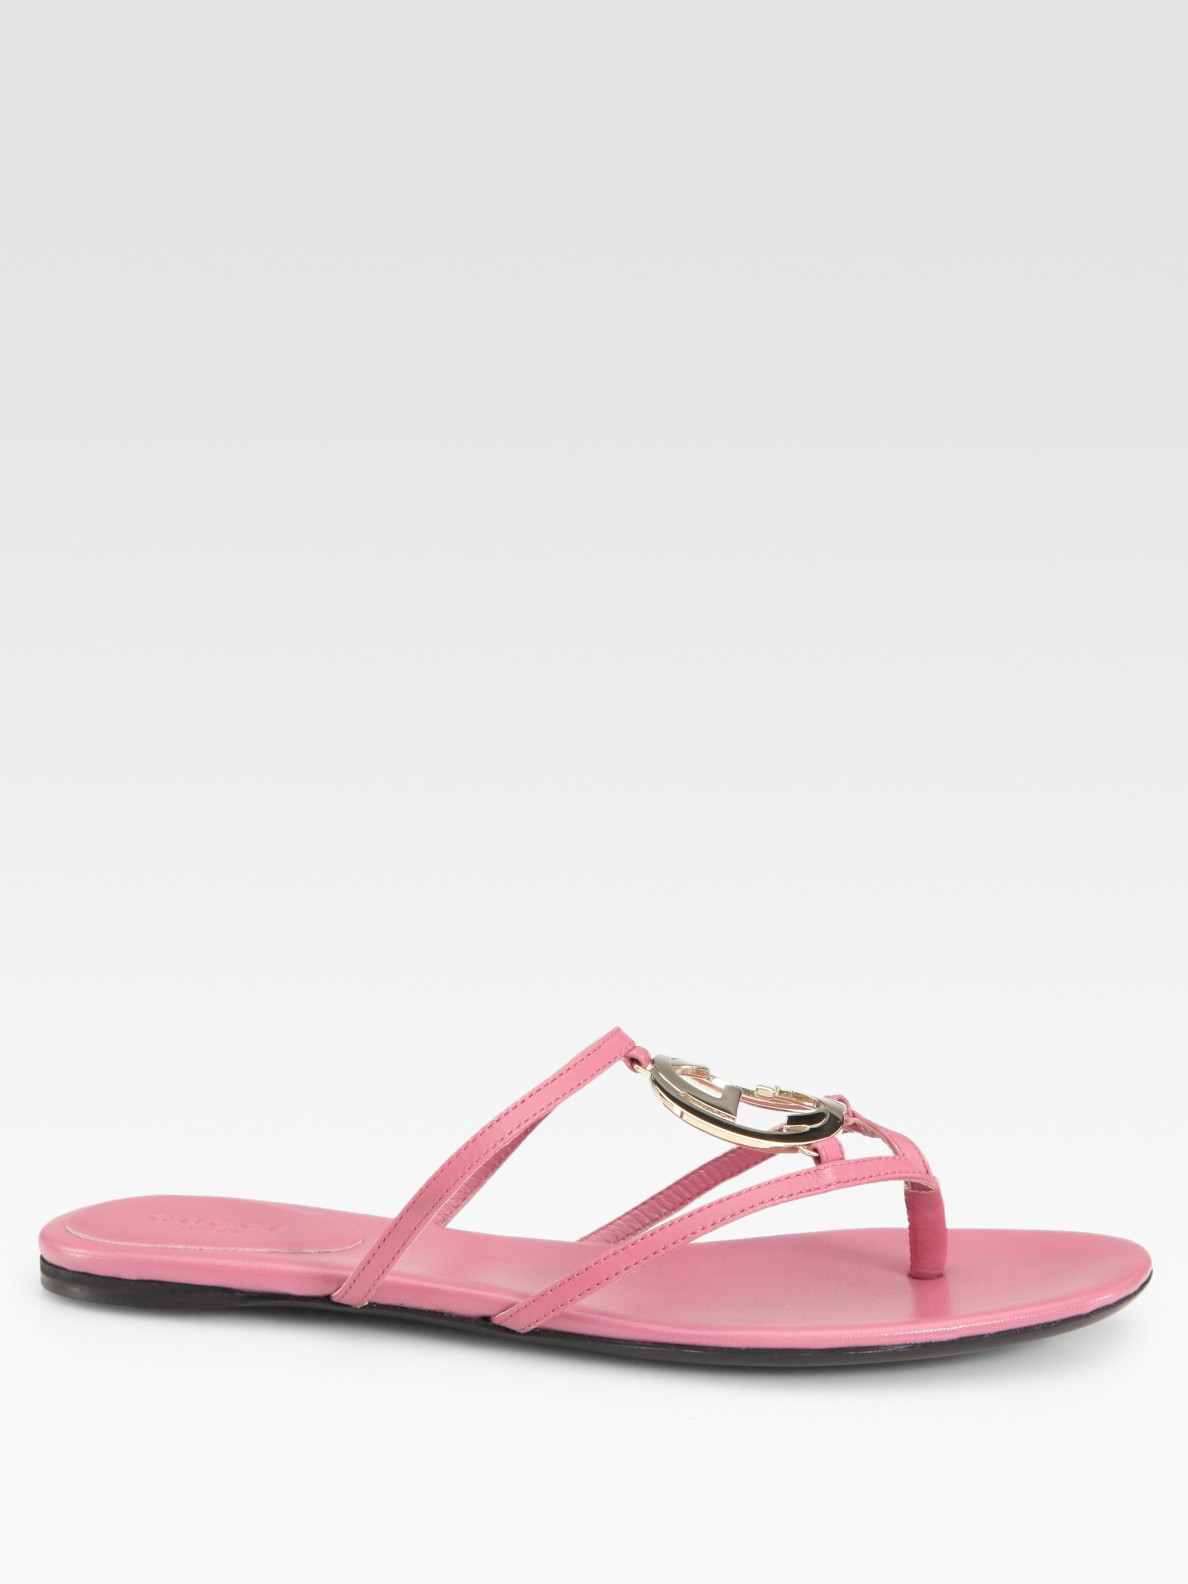 Gucci Thong Flat Sandals In Pink Lyst